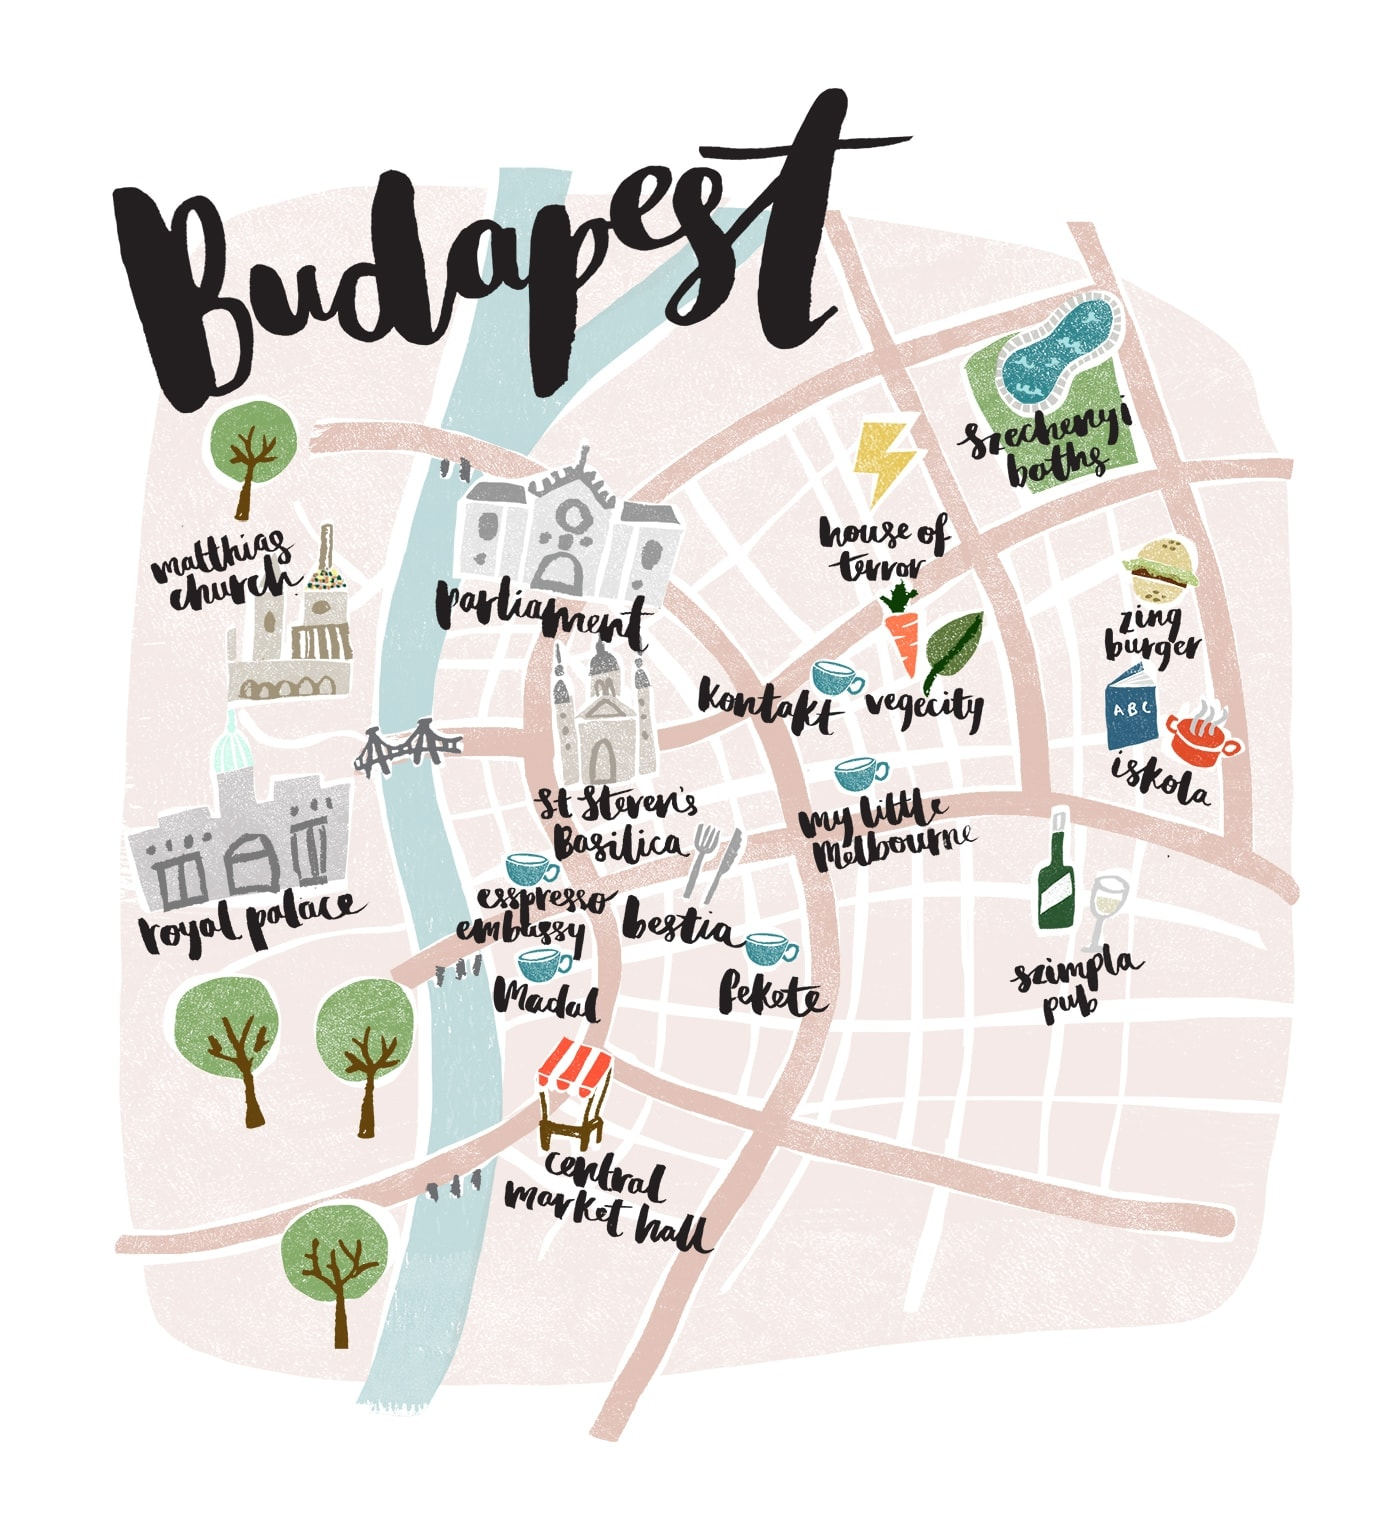 budapest map